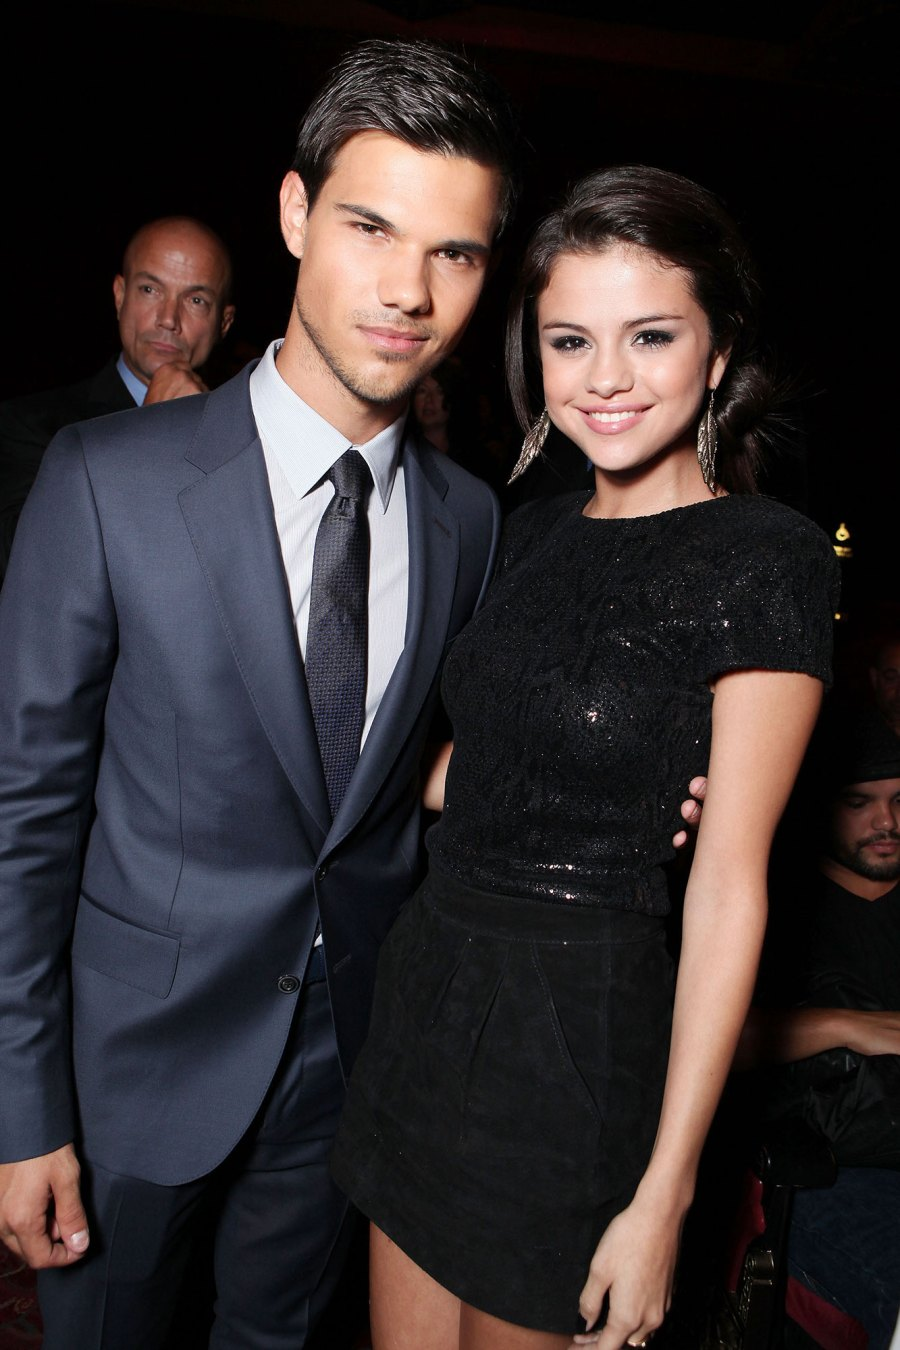 Taylor Lautner Selena Gomez Complete Dating History